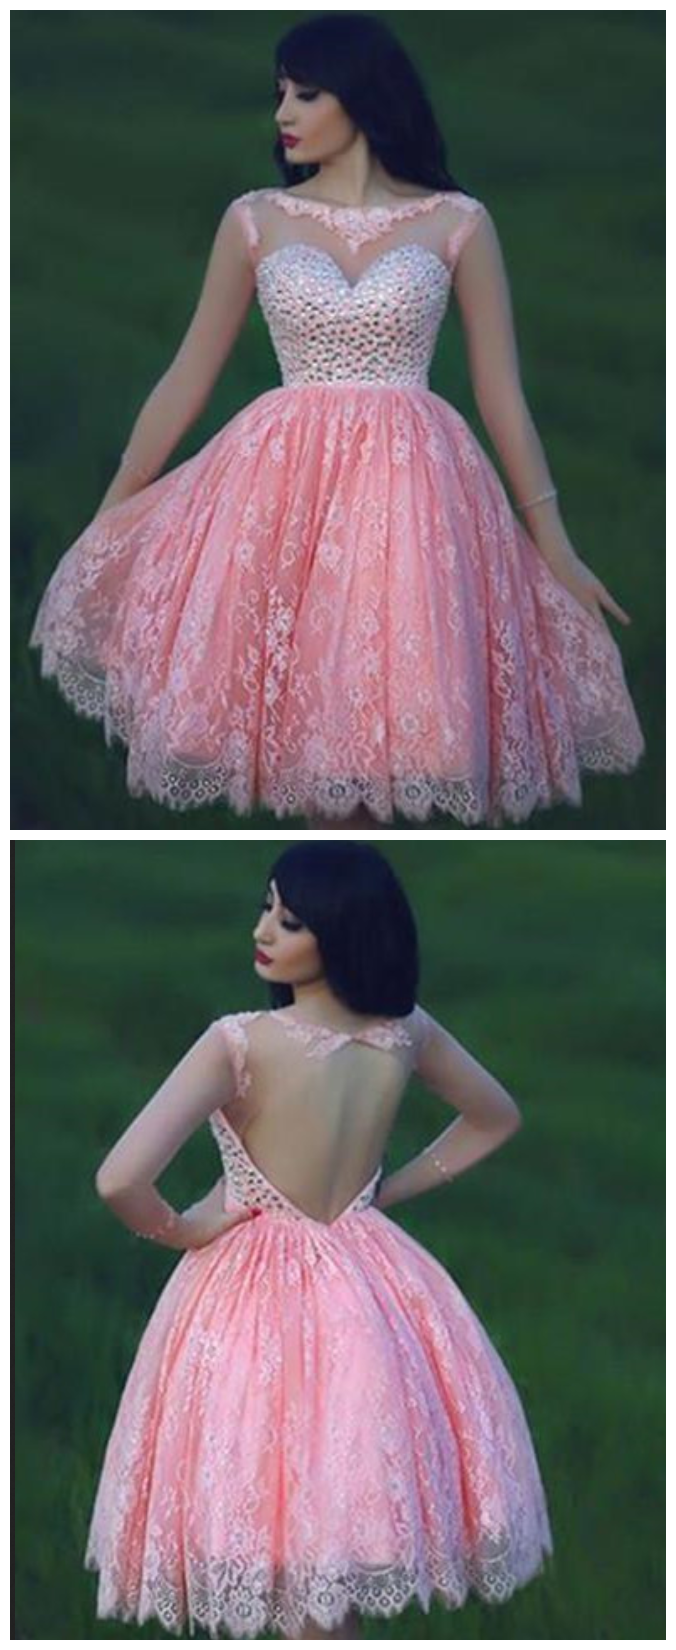 Lace_Homecoming_Dress,Pink_Homecoming_Dress,Pink_Homecoming_Dress,Lace_Homecoming_Dress,Short_Prom_Dress,Country_Homecoming_Gowns